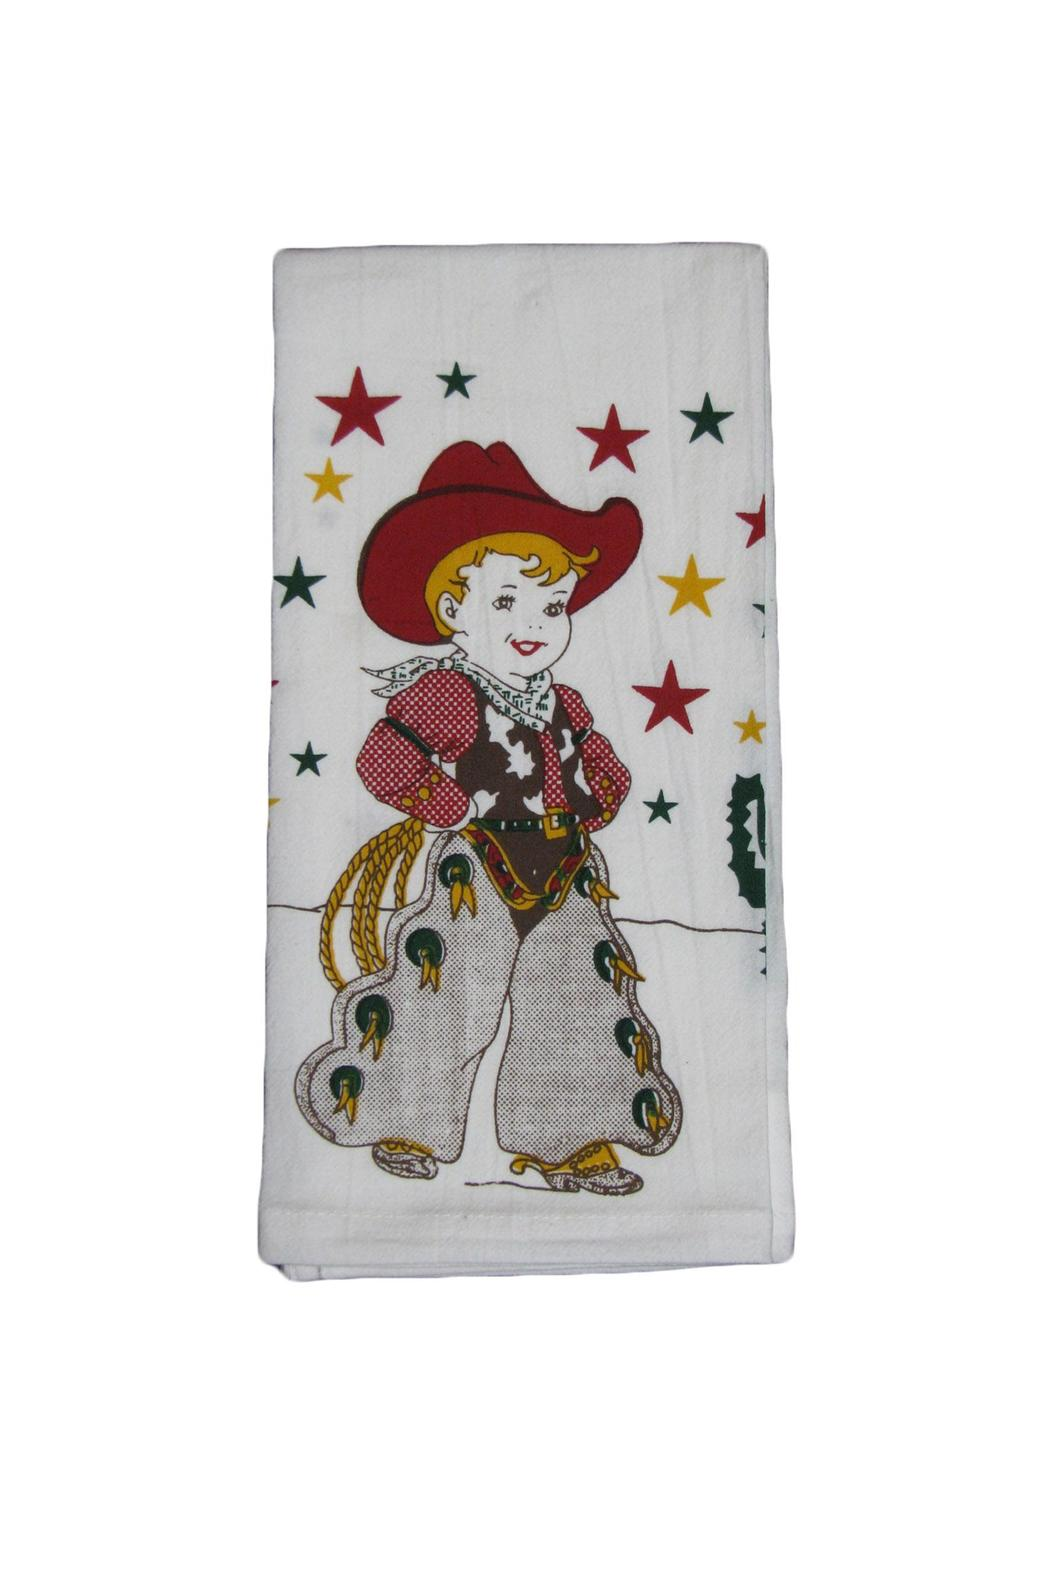 Red And White Kitchen Co Retro Kitchen Towel From